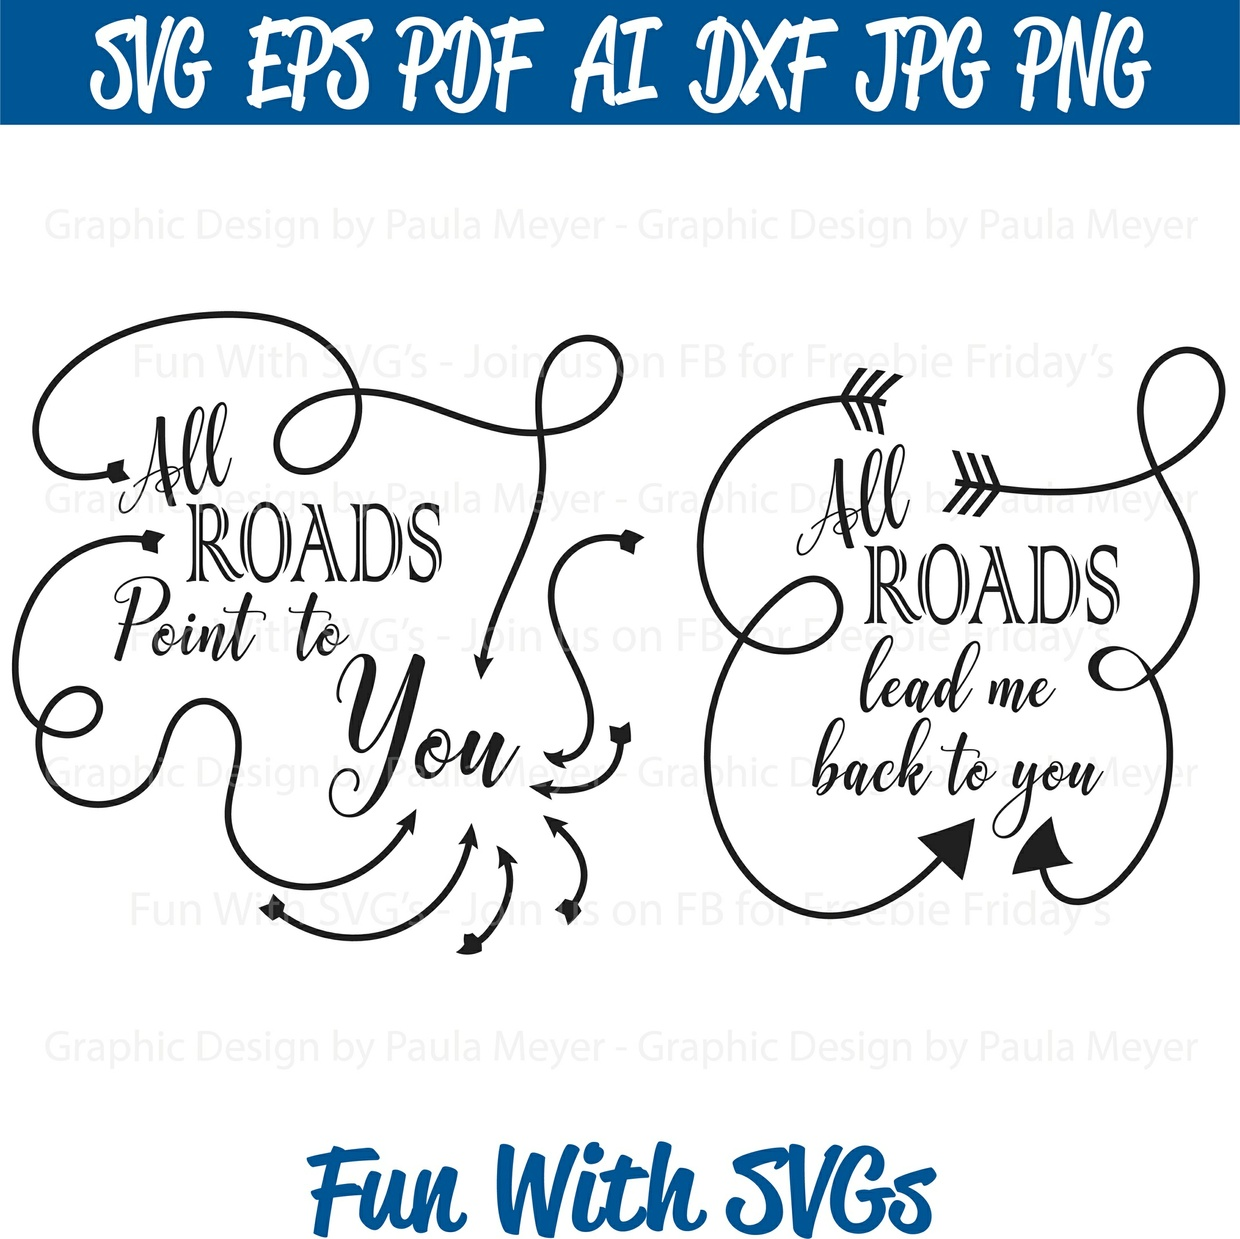 All Roads - SVG Cut File, High Resolution Printable Graphics and Editable Vector Art